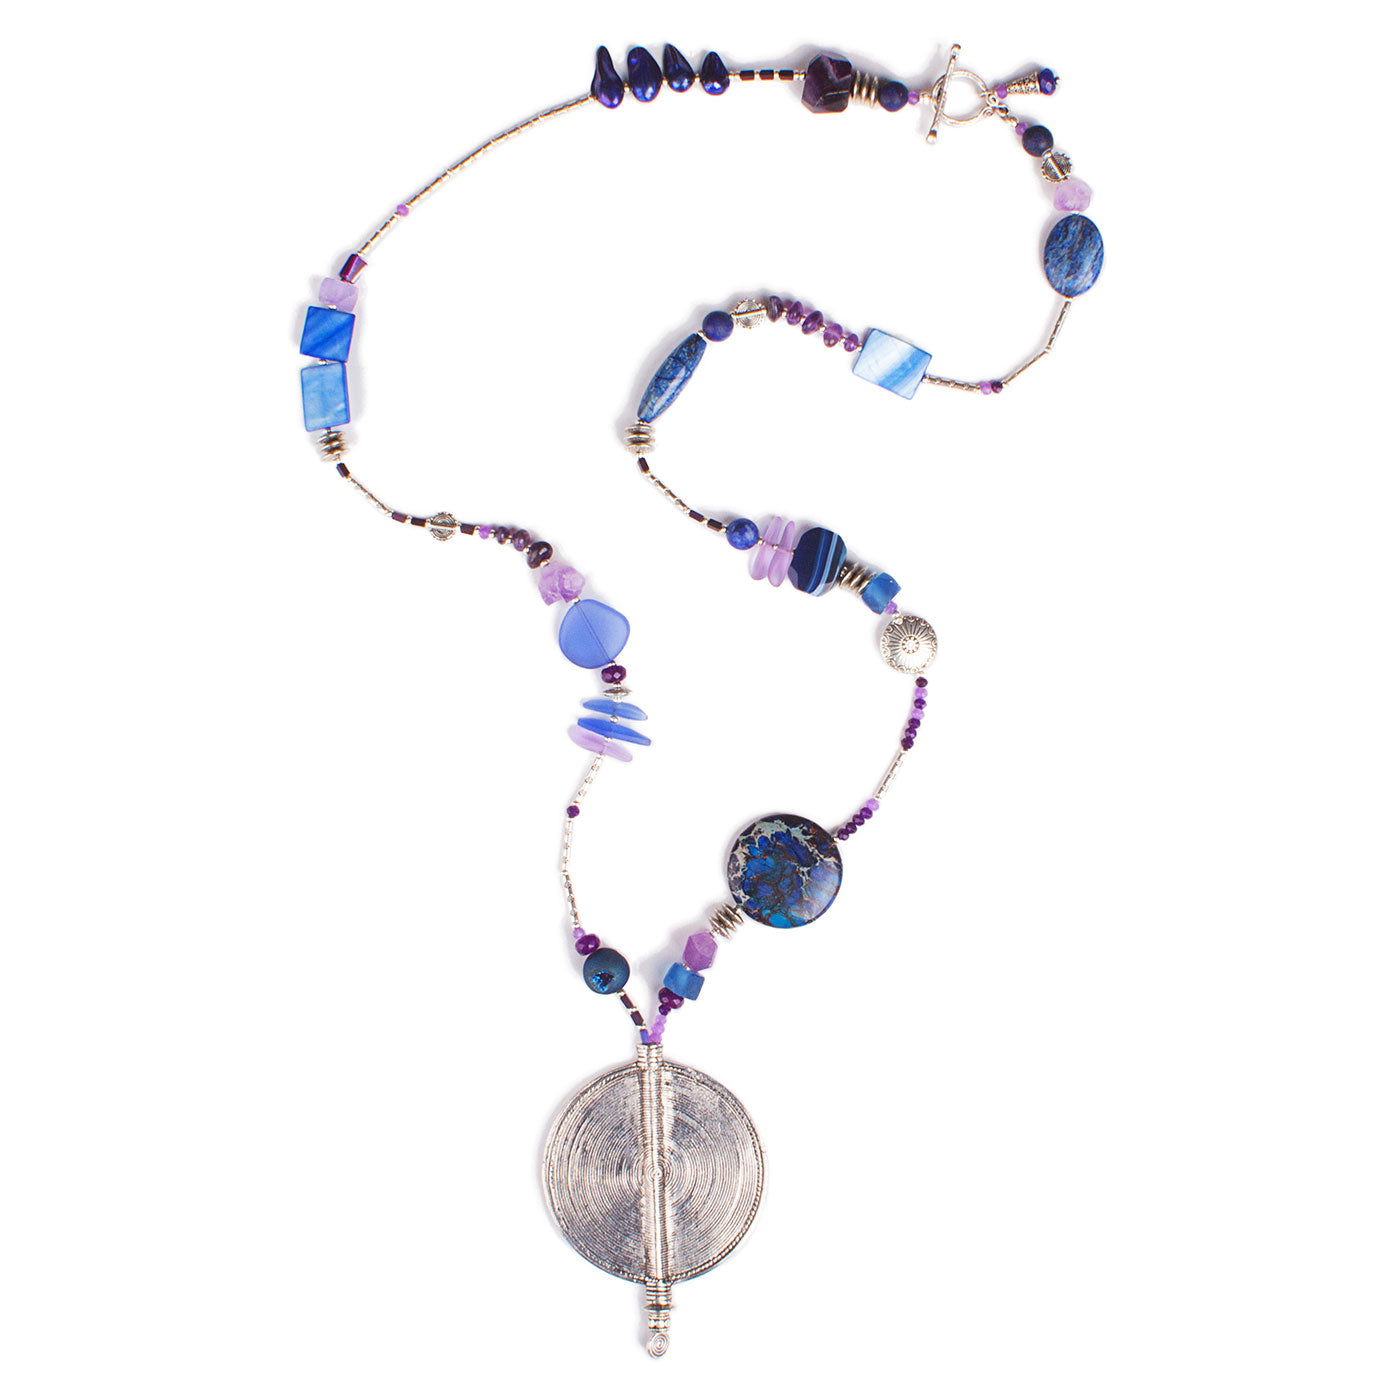 N°694 The Quiet Purple & Deep Blue Wave Statement Necklace